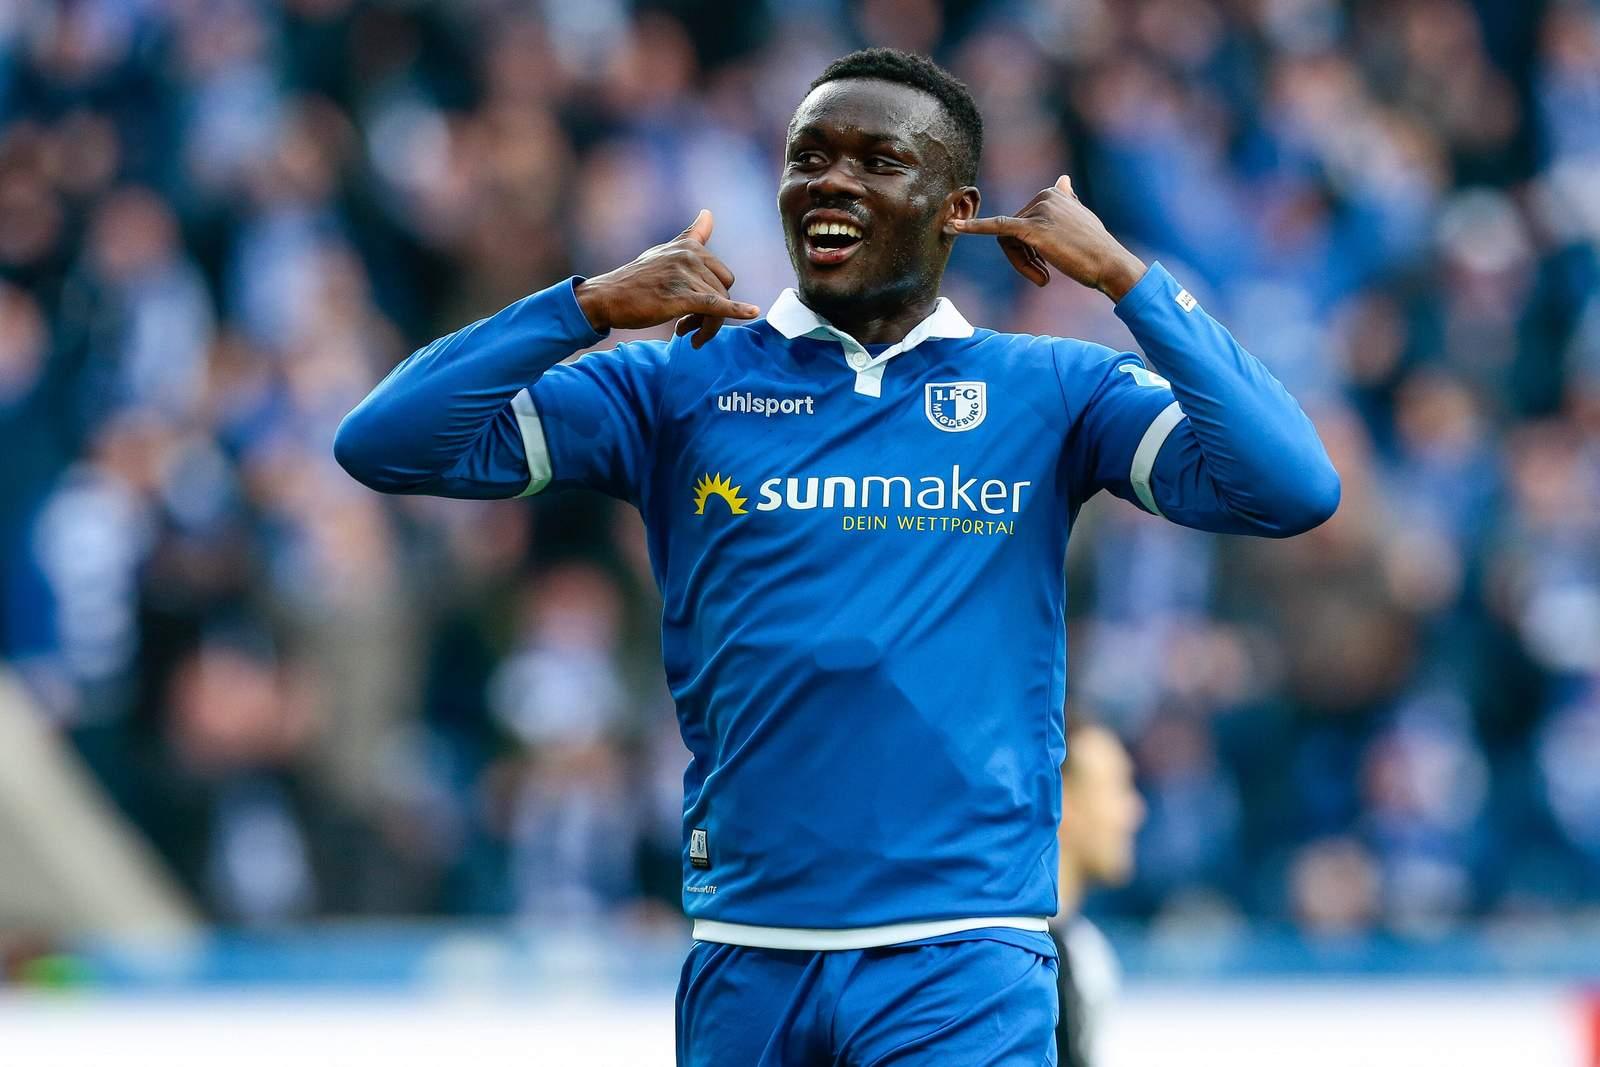 Sirlord Conteh vom 1. FC Magdeburg